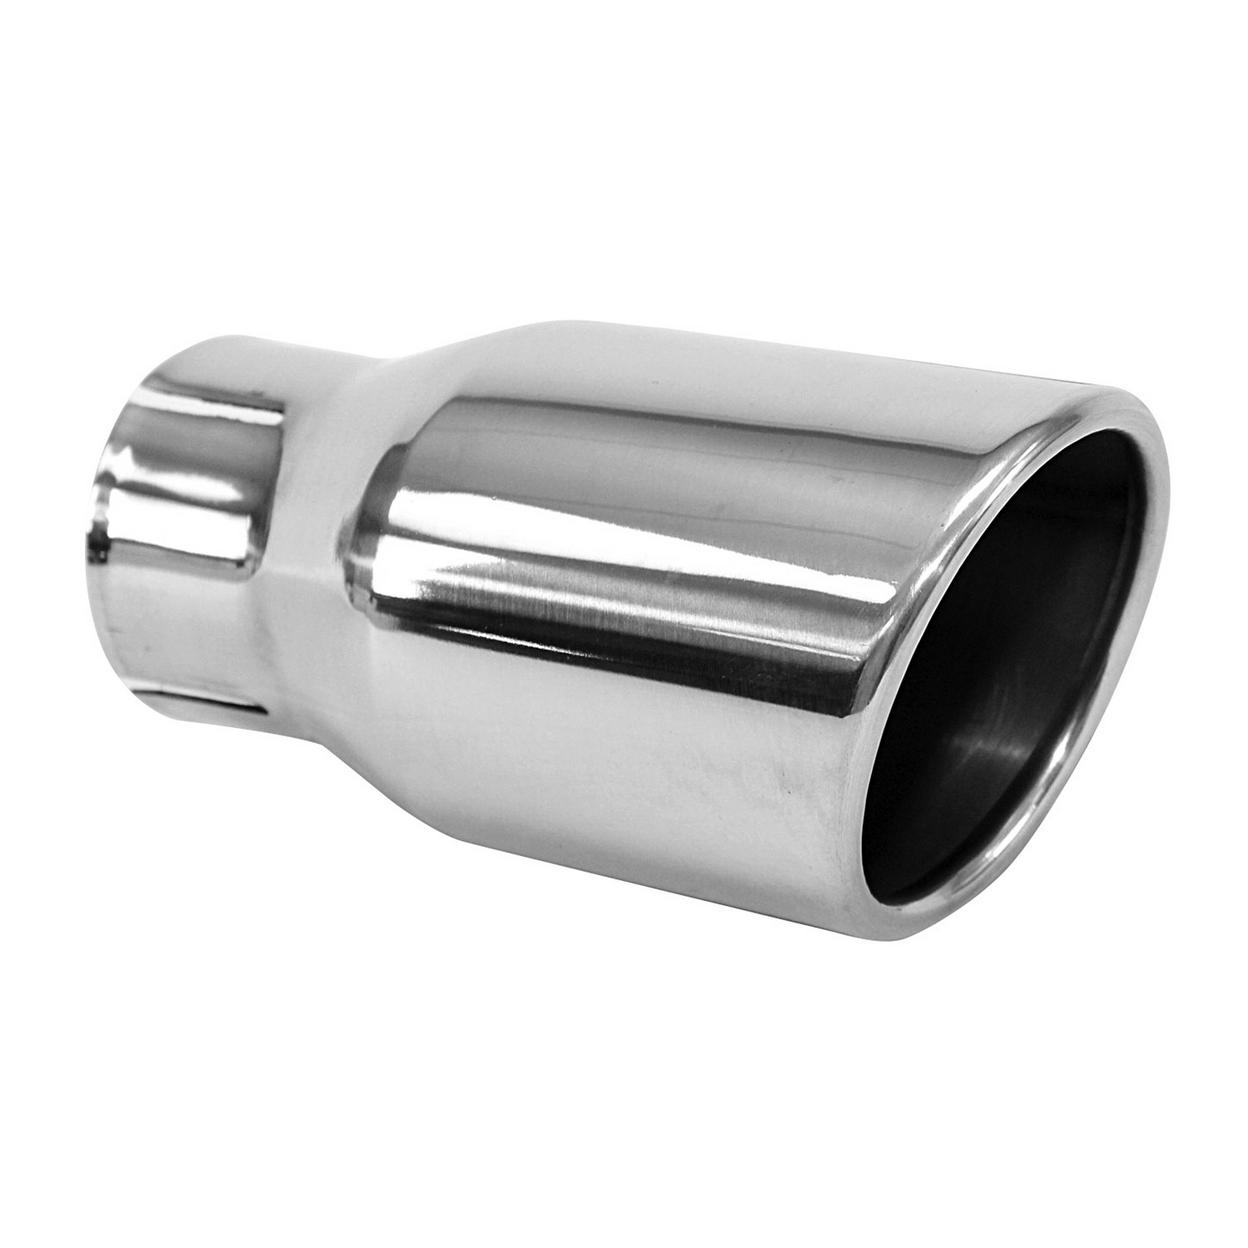 Non-CARB Compliant Bosal 099-1503 Catalytic Converter